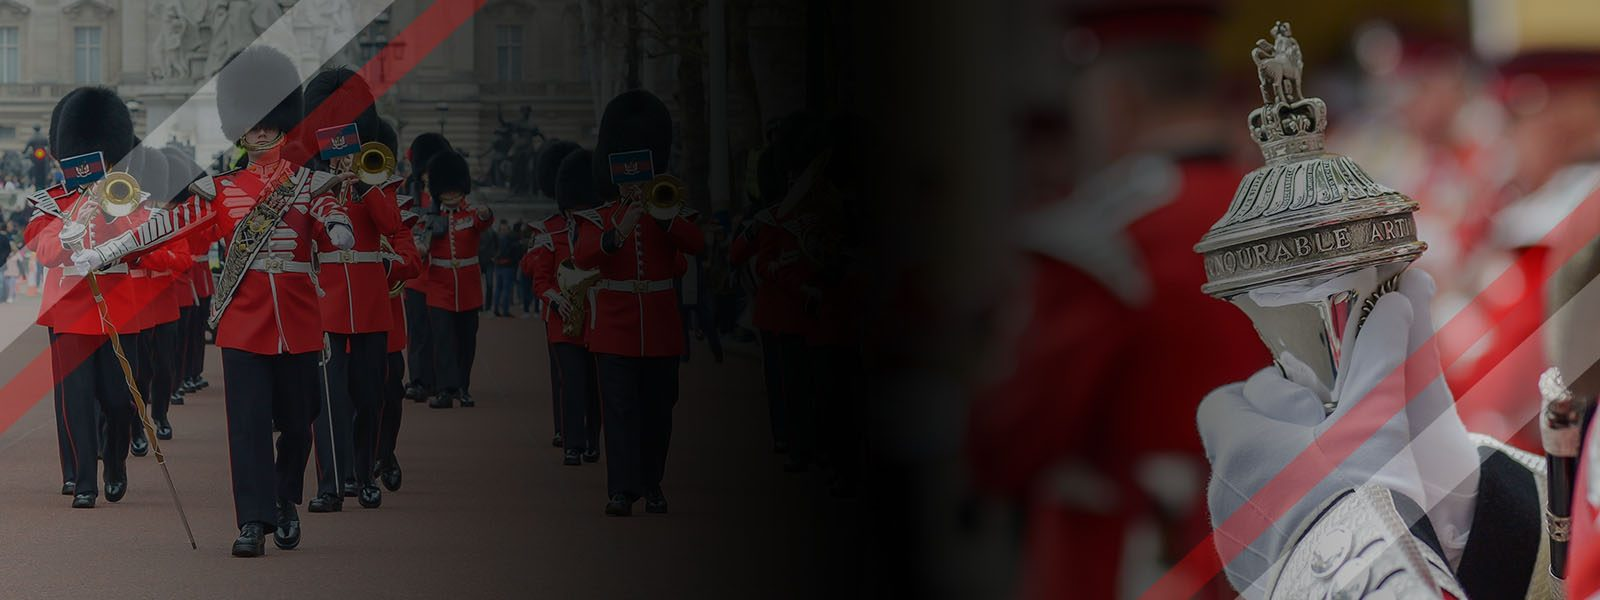 Honourable Artillery Company Massed Bands Concert 2019